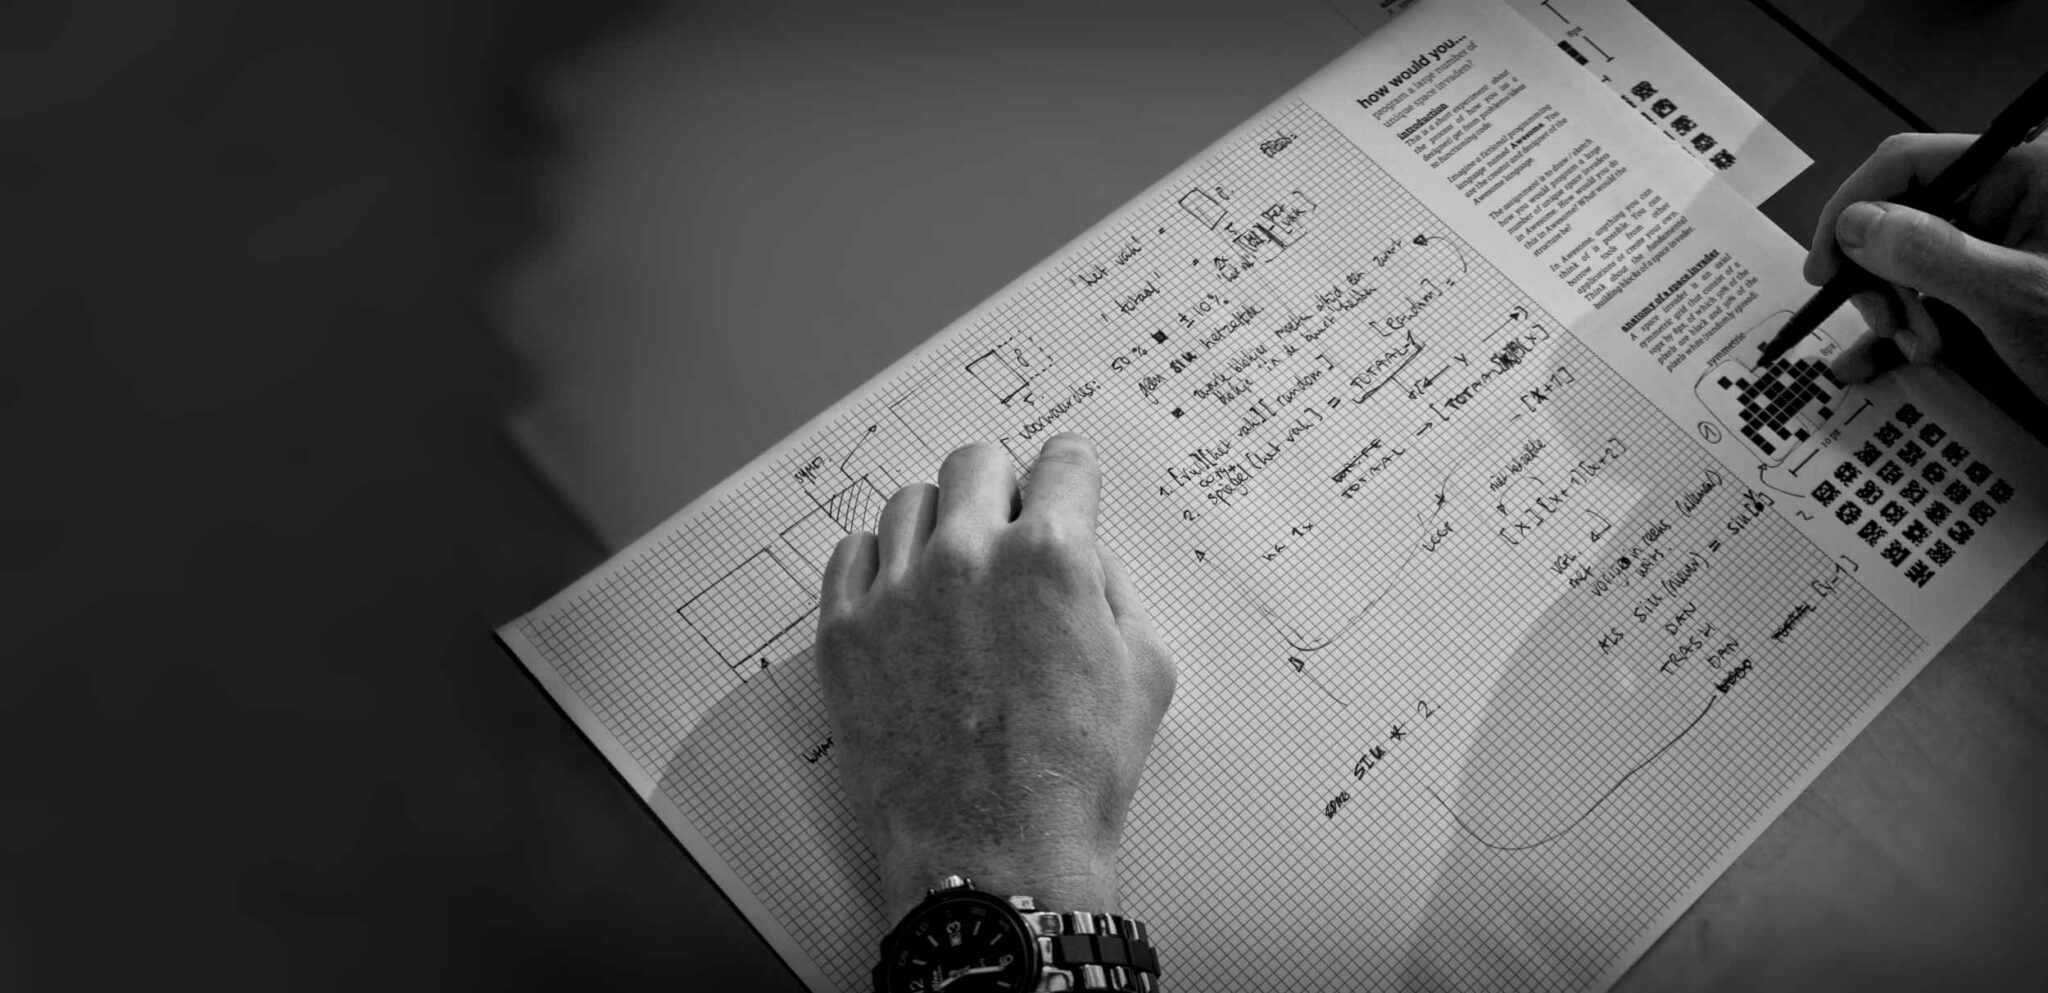 A photo of a person doing a paper programming exercise. The paper is full of notes and sketches.